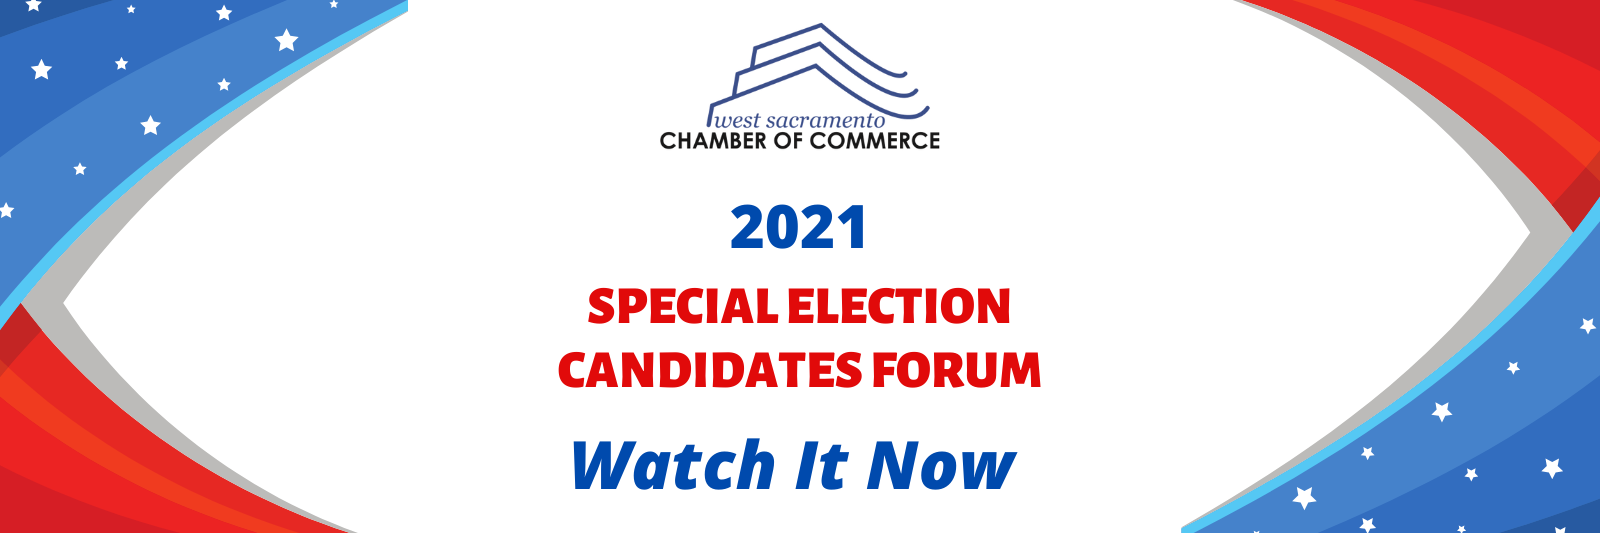 Special-Election-Candidates-Forum.png